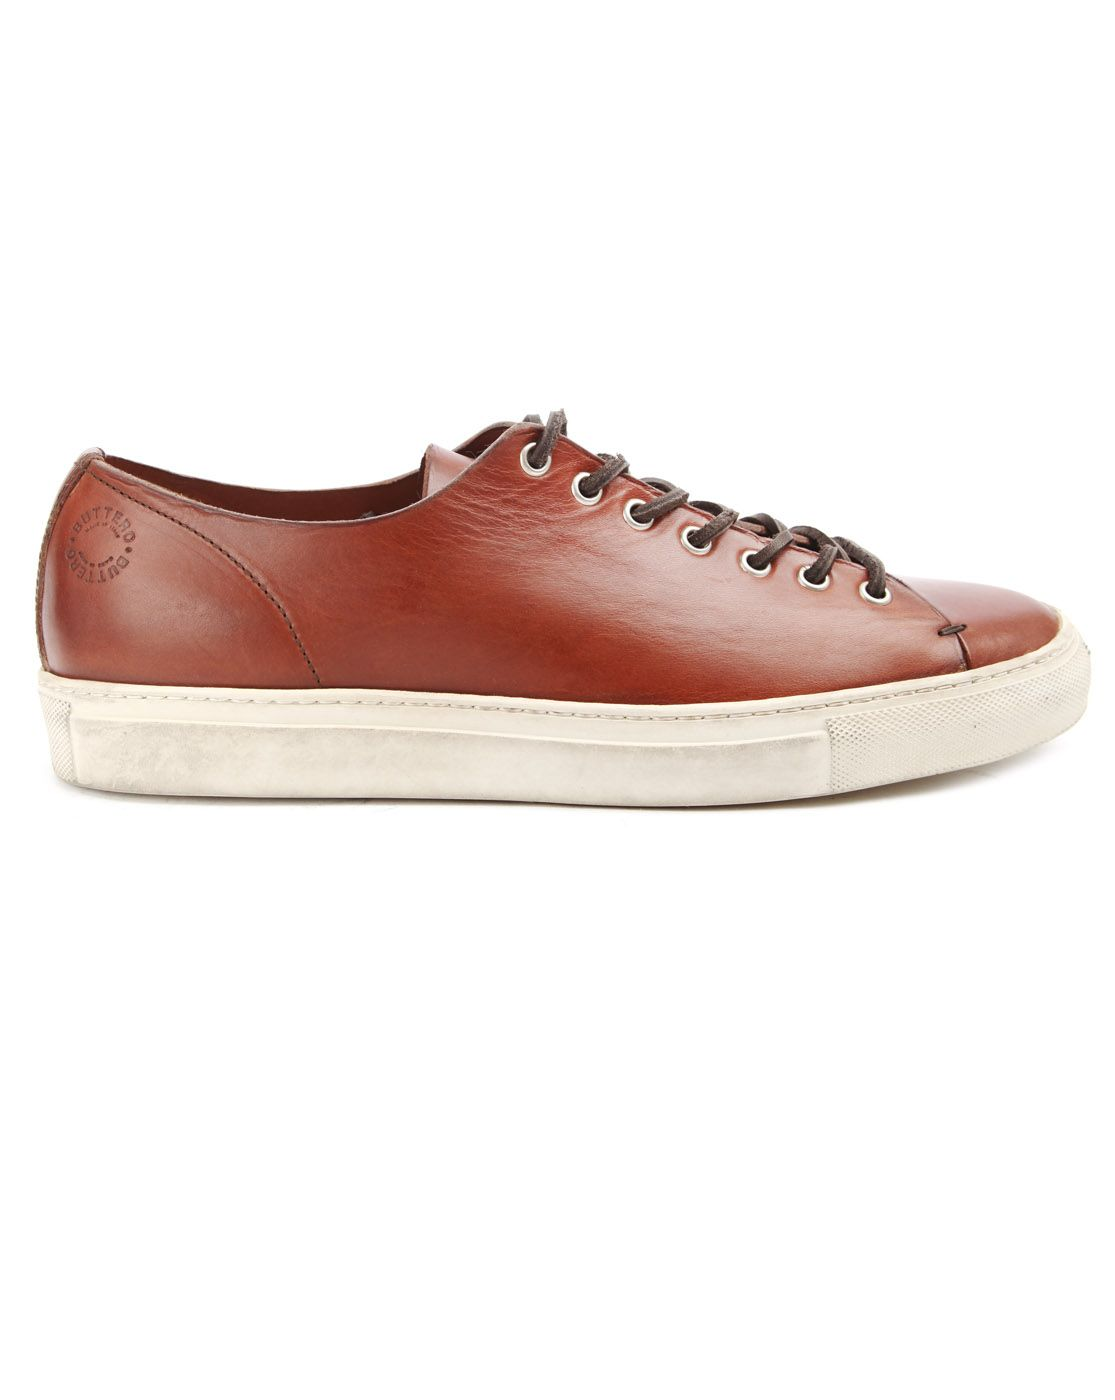 #Buttero Sneakers Tanino Burgundy Leather